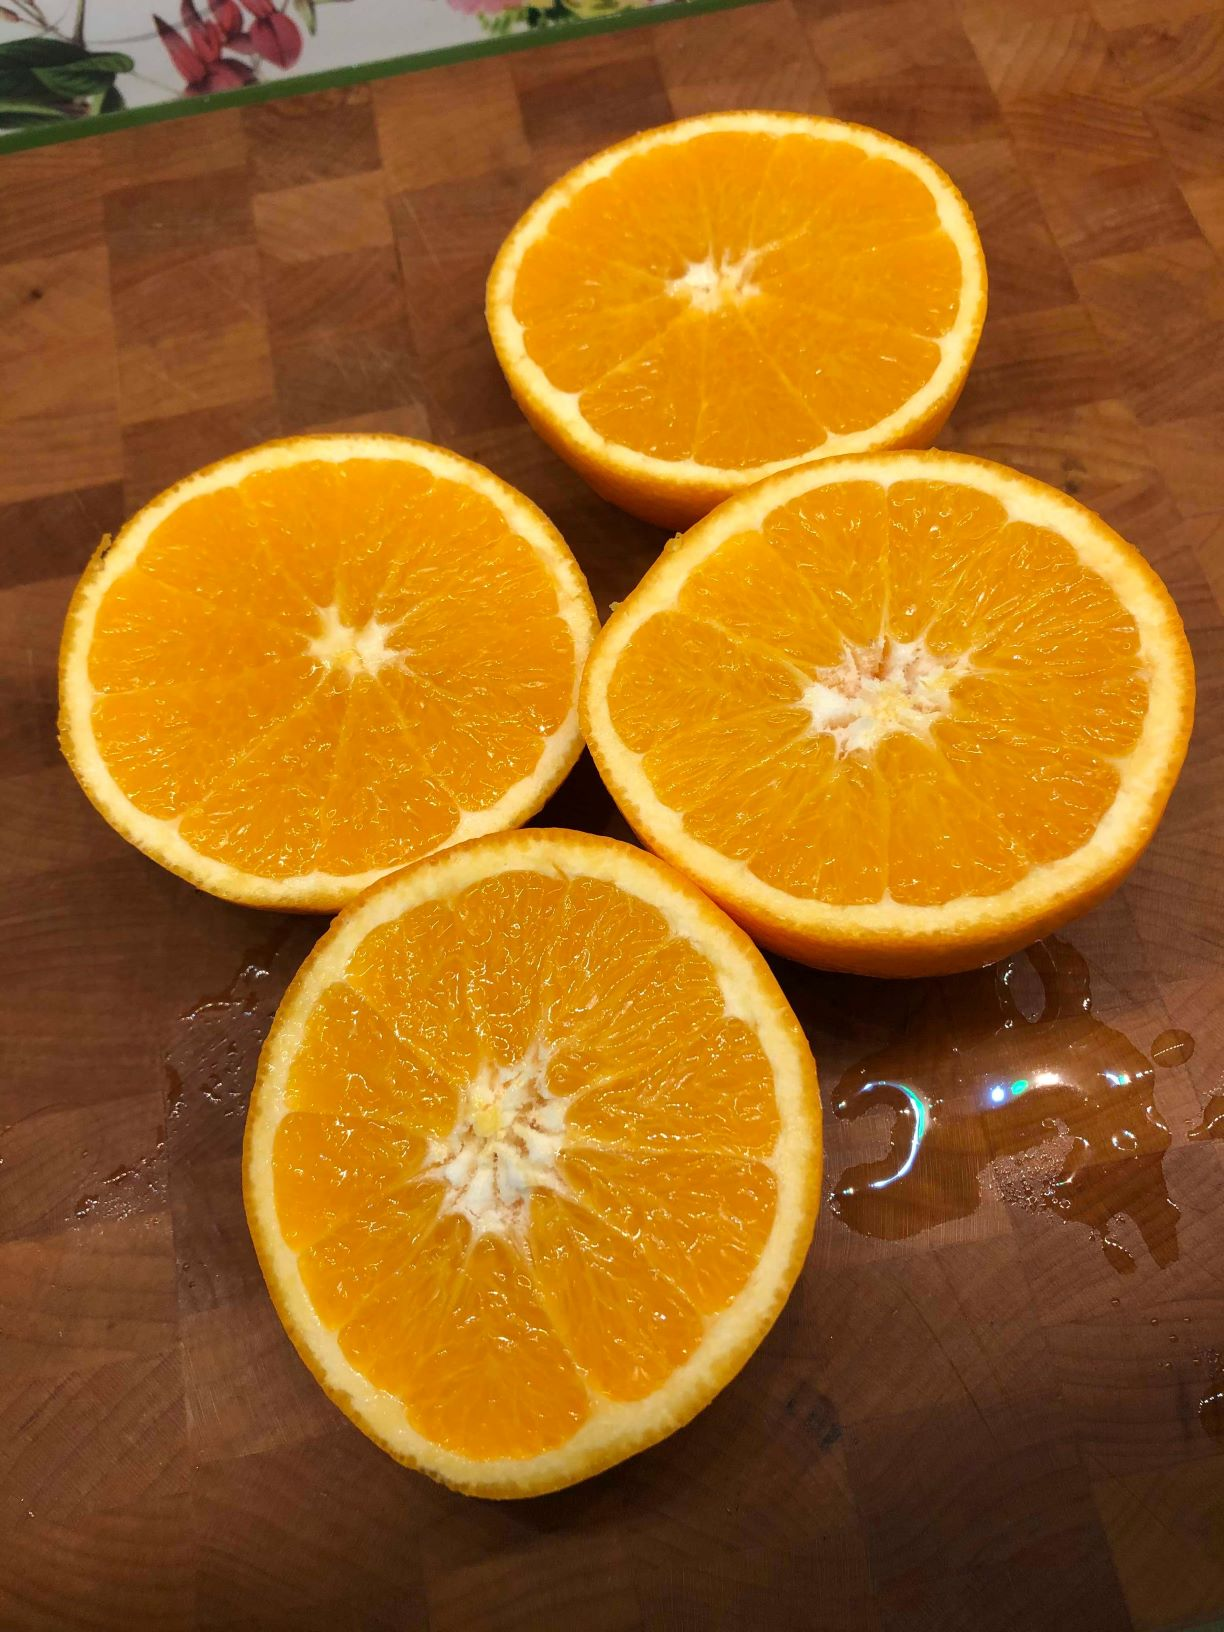 Vitamin C, Oranges, Juicy, Nutritious